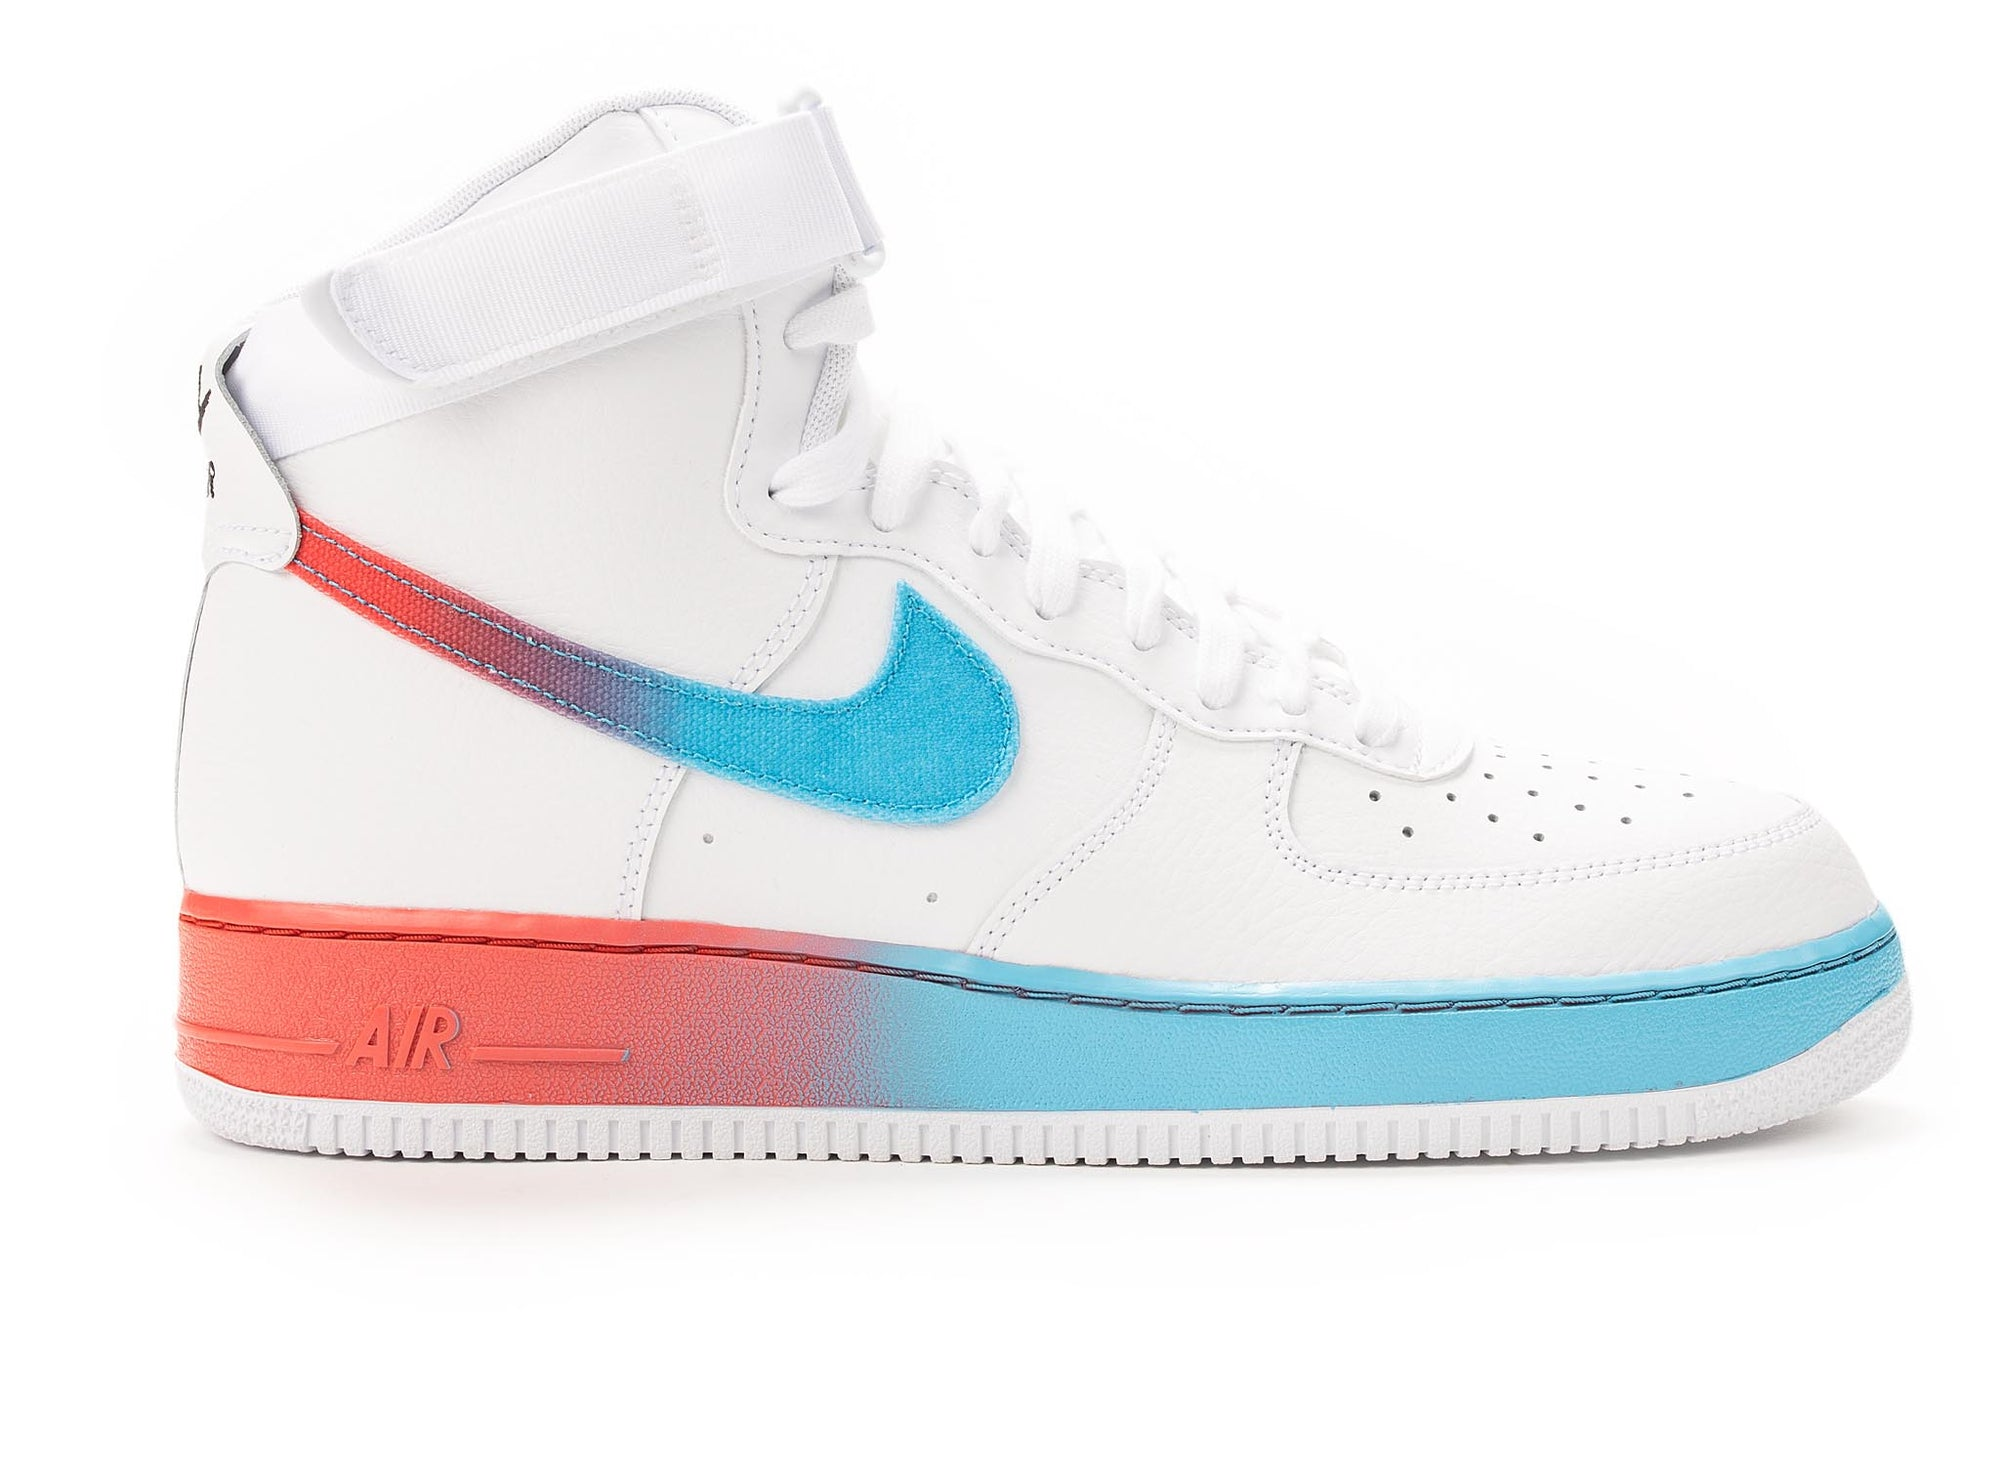 low priced 55bfa e967a Nike Air Force 1 High 07 LV8 'Ember Glow'